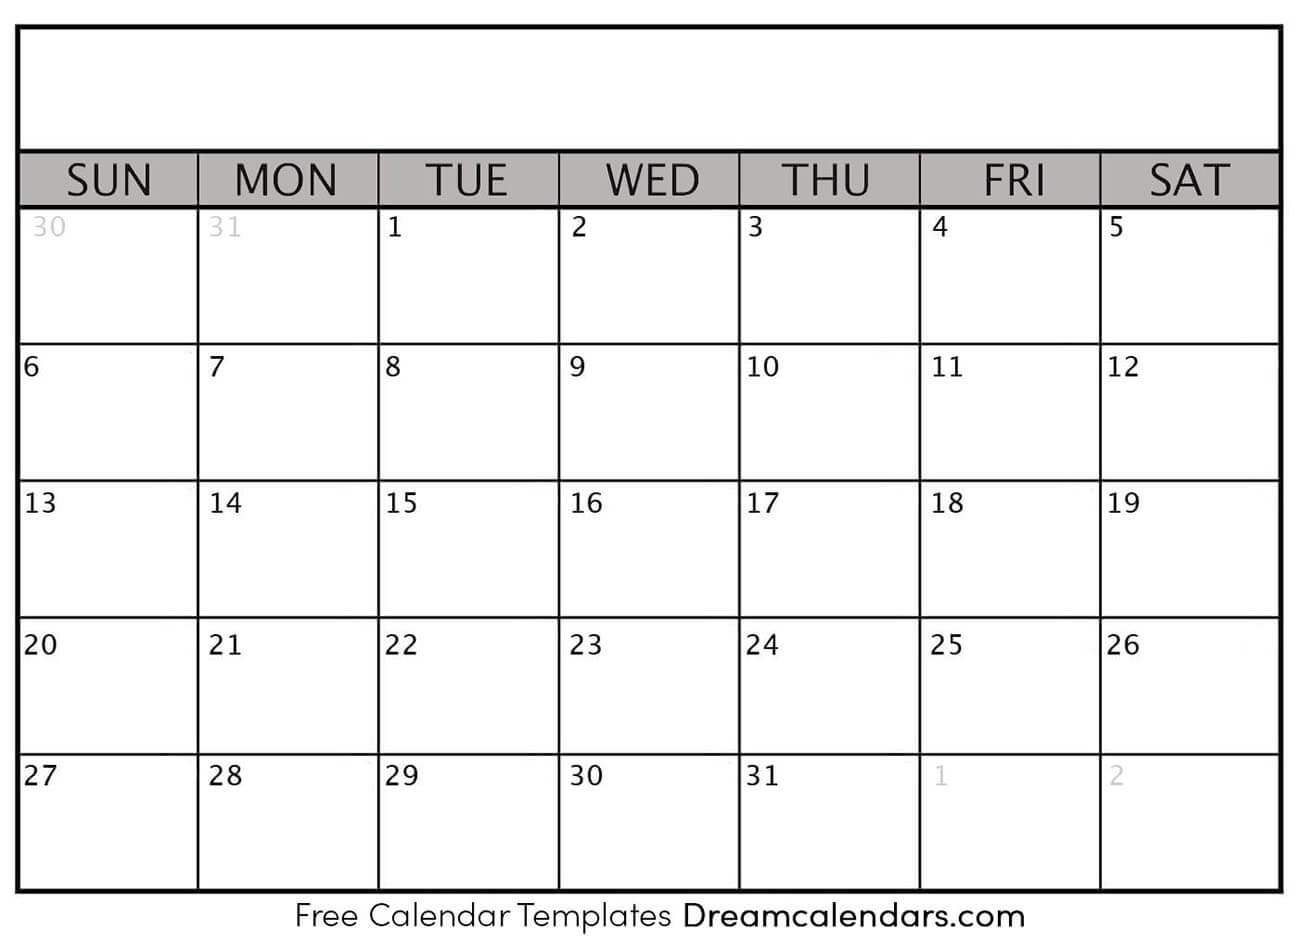 Printable Blank Calendar 2021 | Dream Calendars